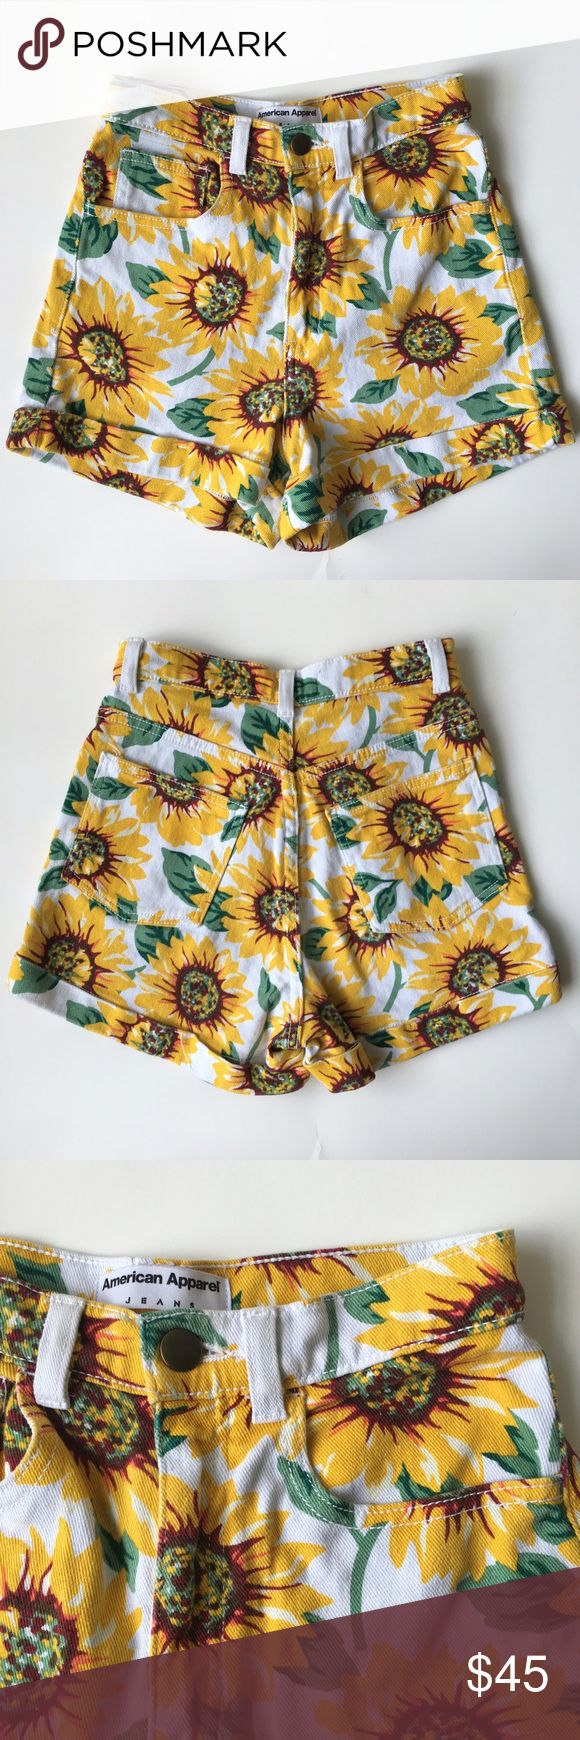 HP🎉American Apparel Sunflower High-Waisted Shorts These are THE sunflower shorts from American Apparel. Sooo cute, but they just don't fit me anymore! Size 24/25, they do have some stretch. These are the perfect shorts for summer! White denim with an adorable sunflower pattern. So flattering. Perfect condition. American Apparel Shorts Jean Shorts